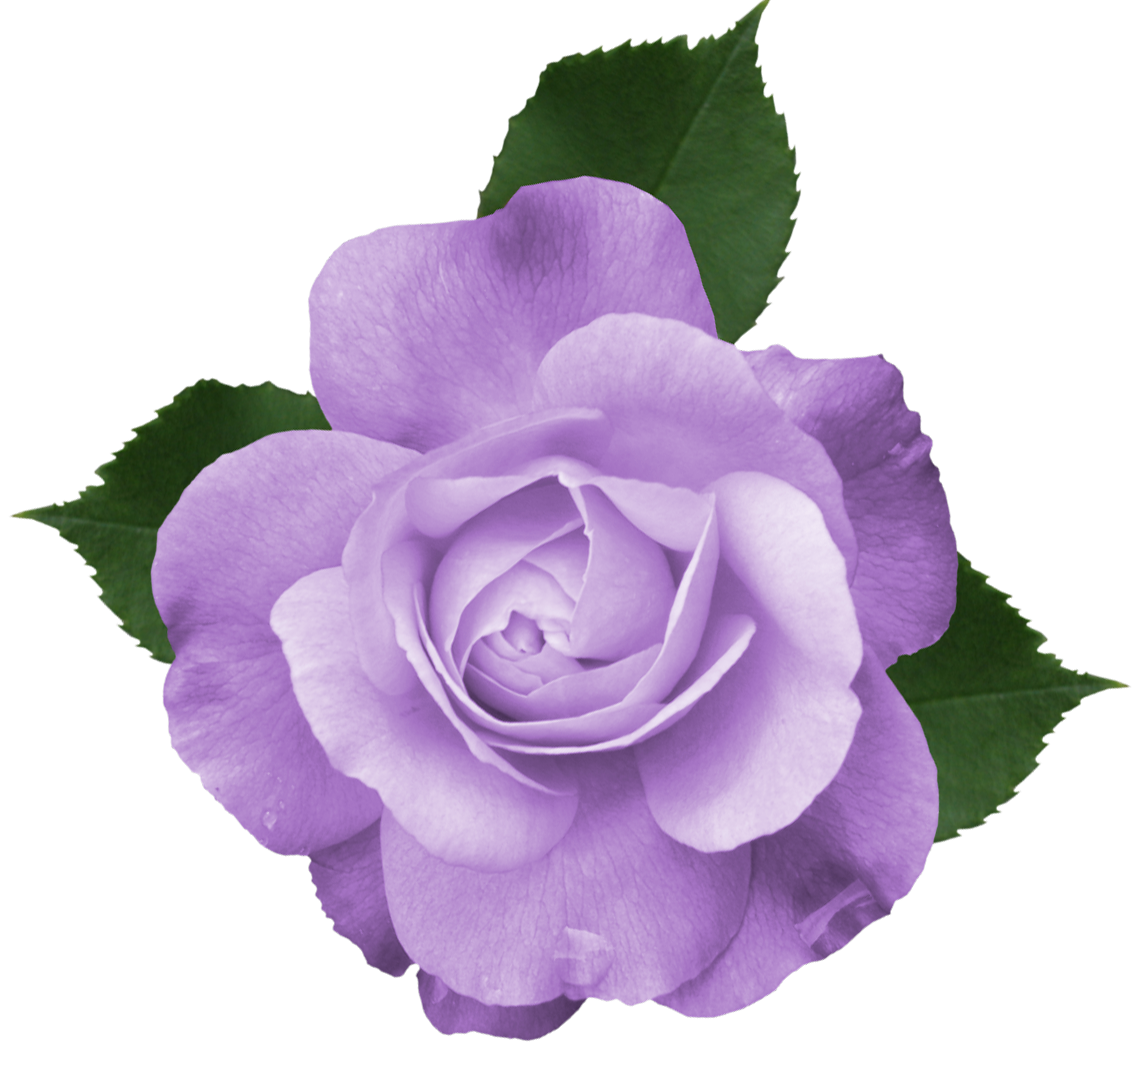 Purple Flower Clipart No Background: Pin By Diane Labadie On Backgrounds